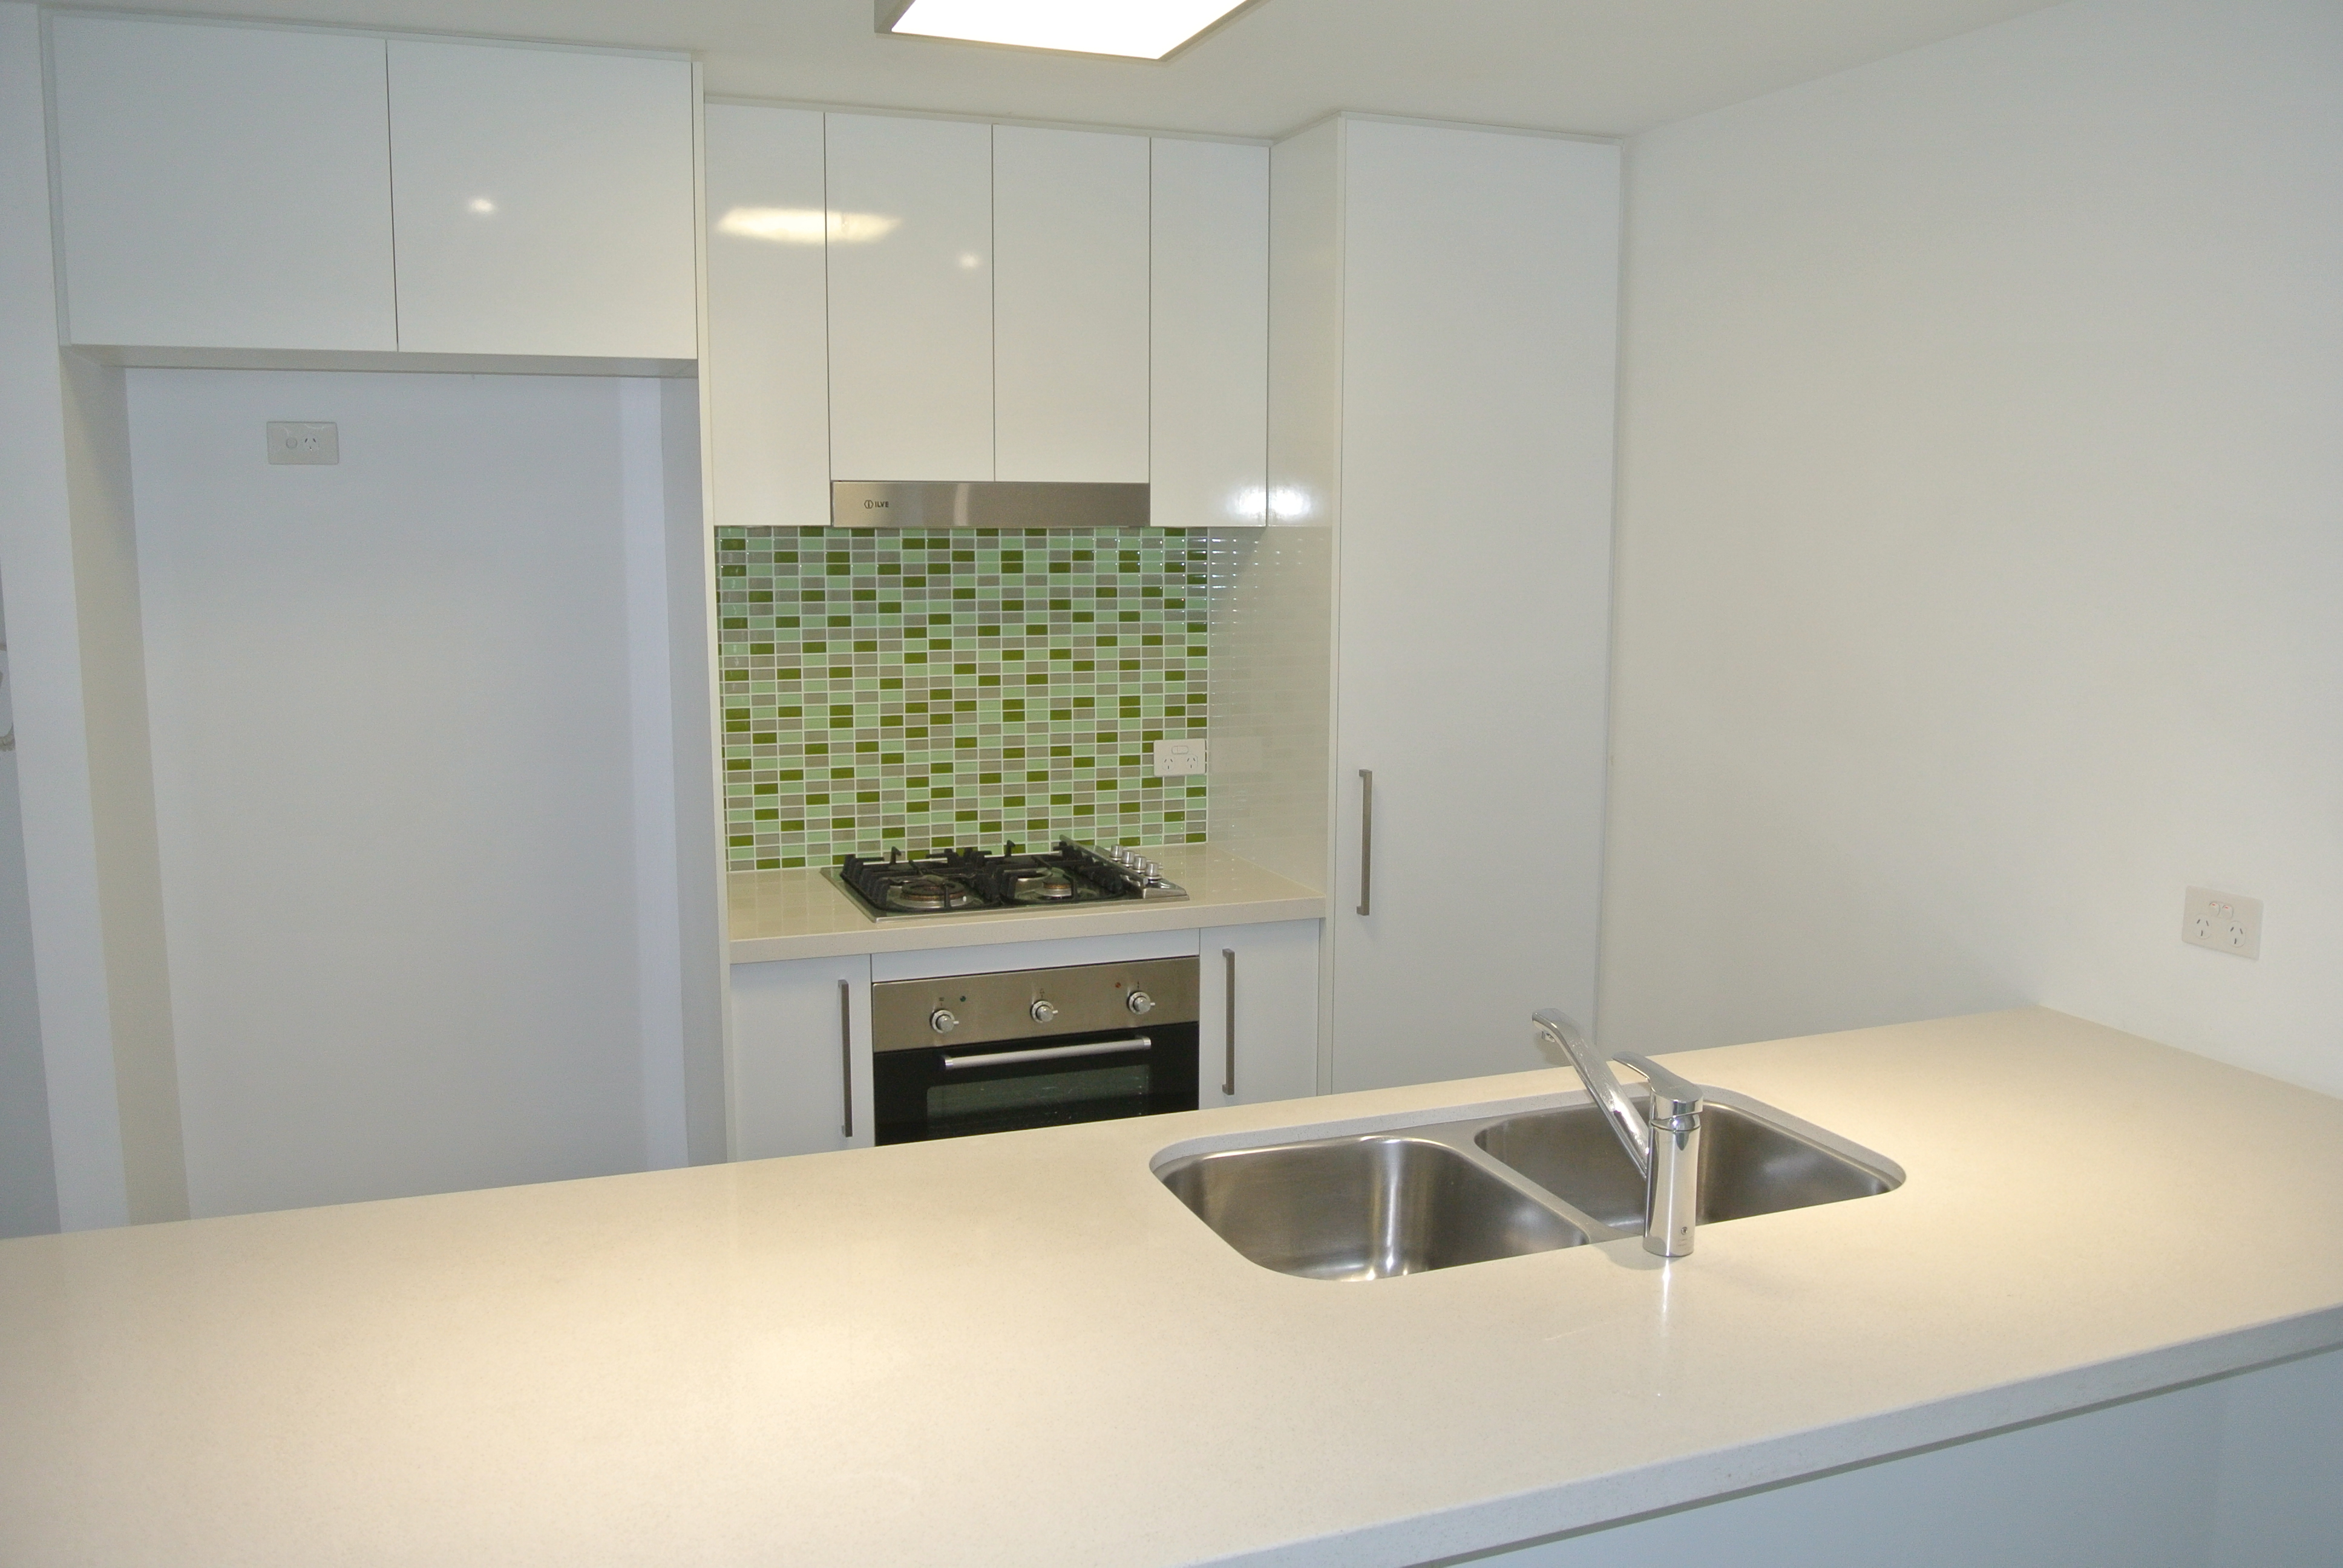 Luxurious and Modern 2 Bed, 2 Bath Apartment with 1 week rent free and 1 month free internet